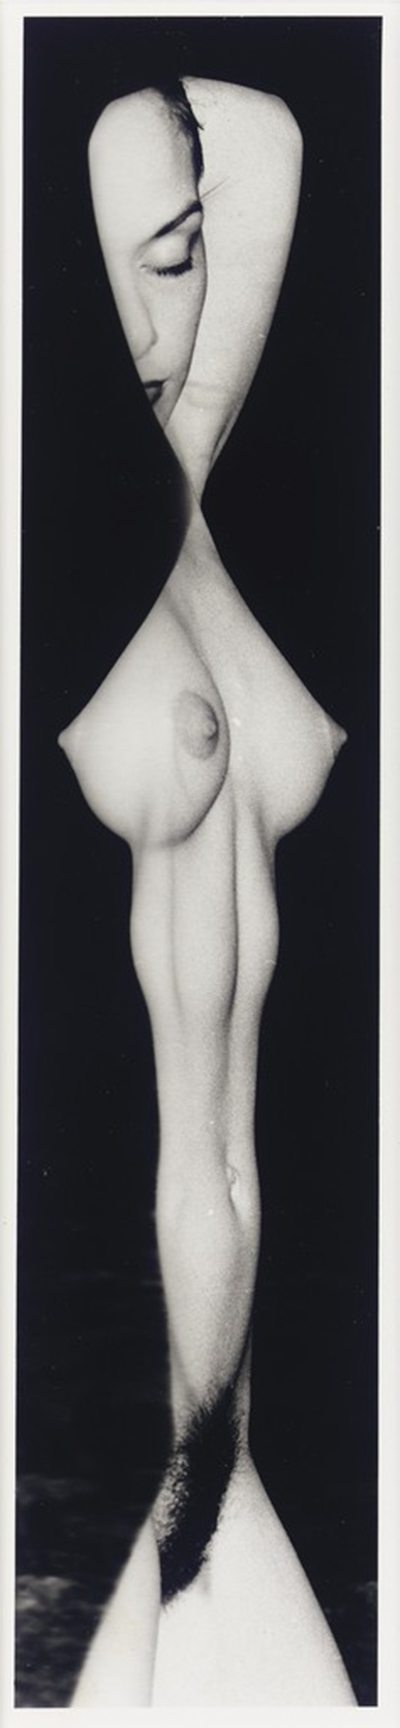 weegee, photography, naked, nude, noir, black & white, 1950s, 50s